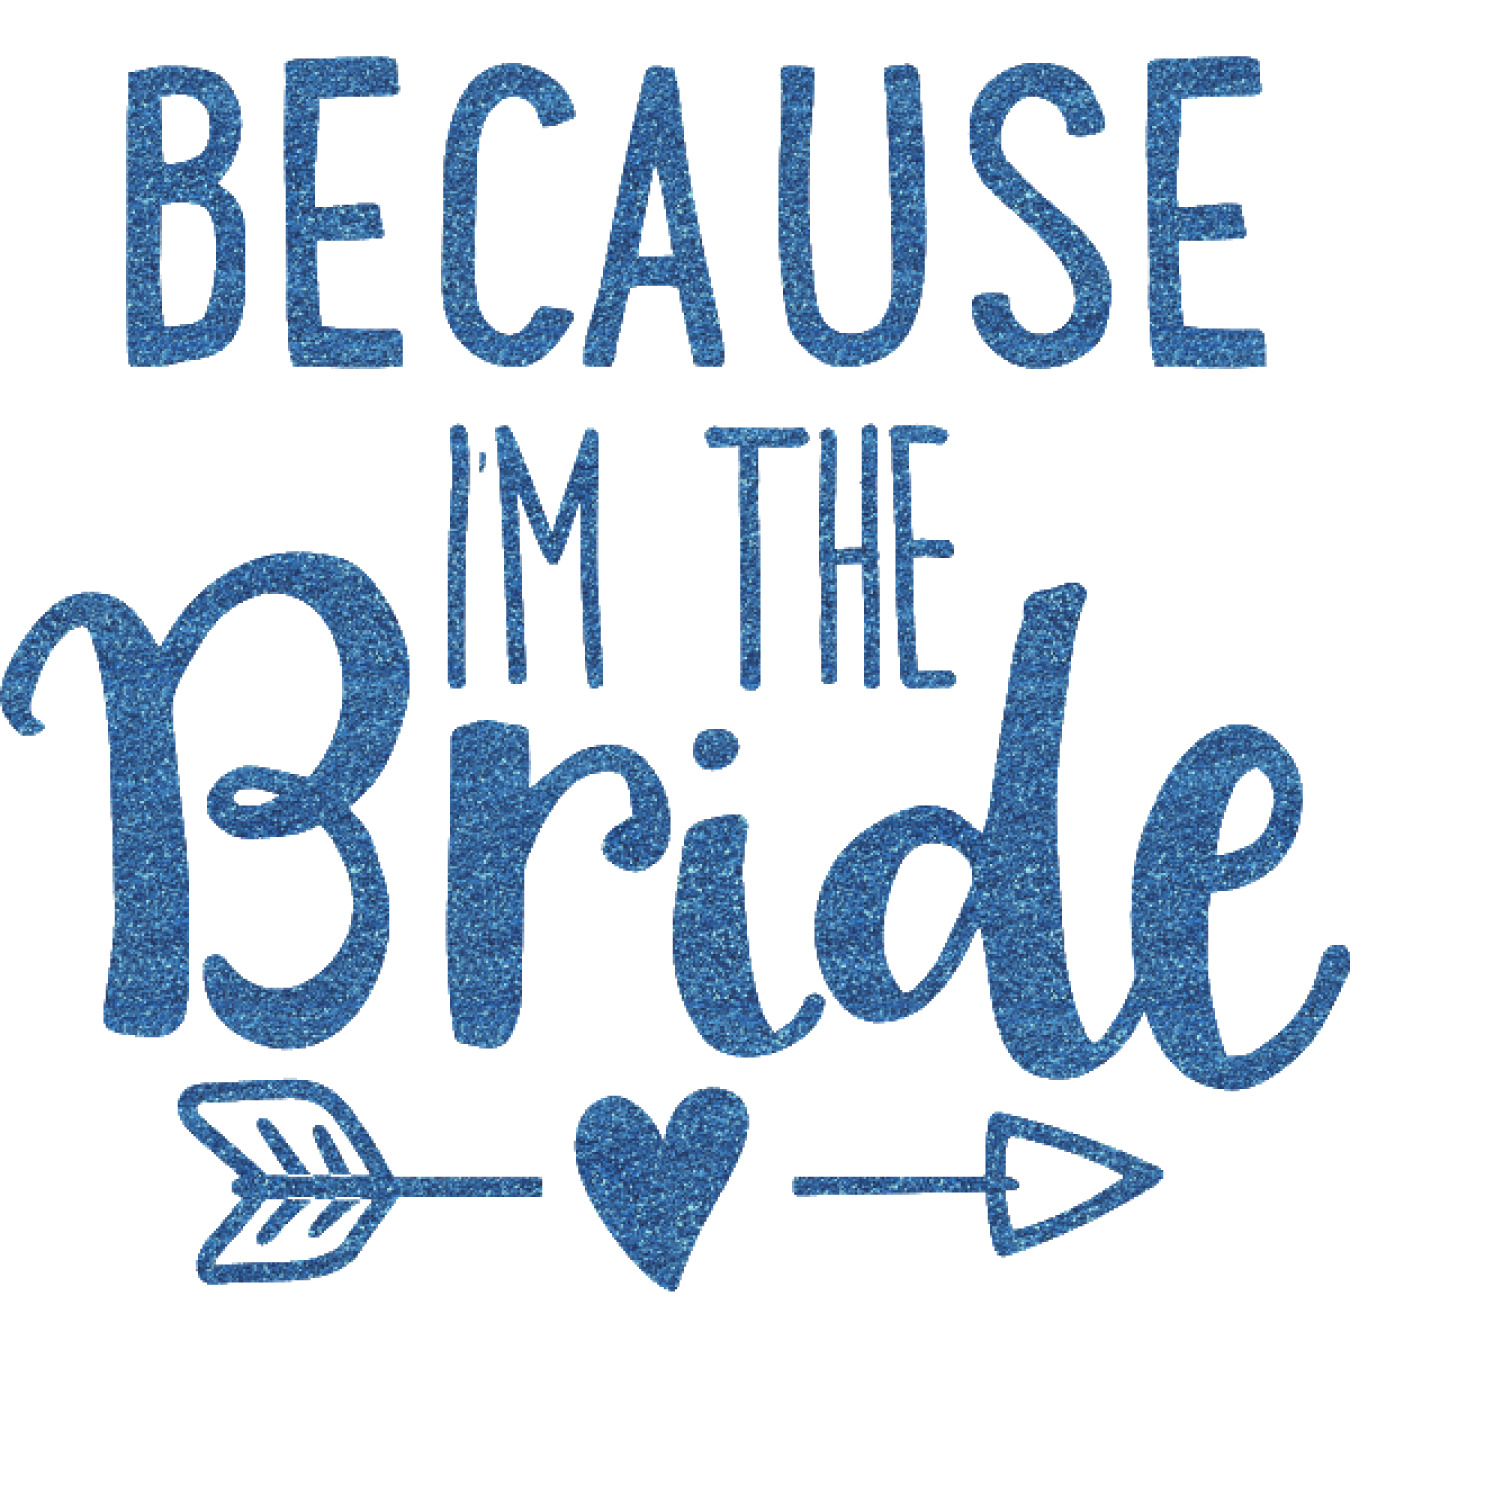 Bride Wedding Quotes And Sayings Glitter Sticker Decal Custom Sized Personalized